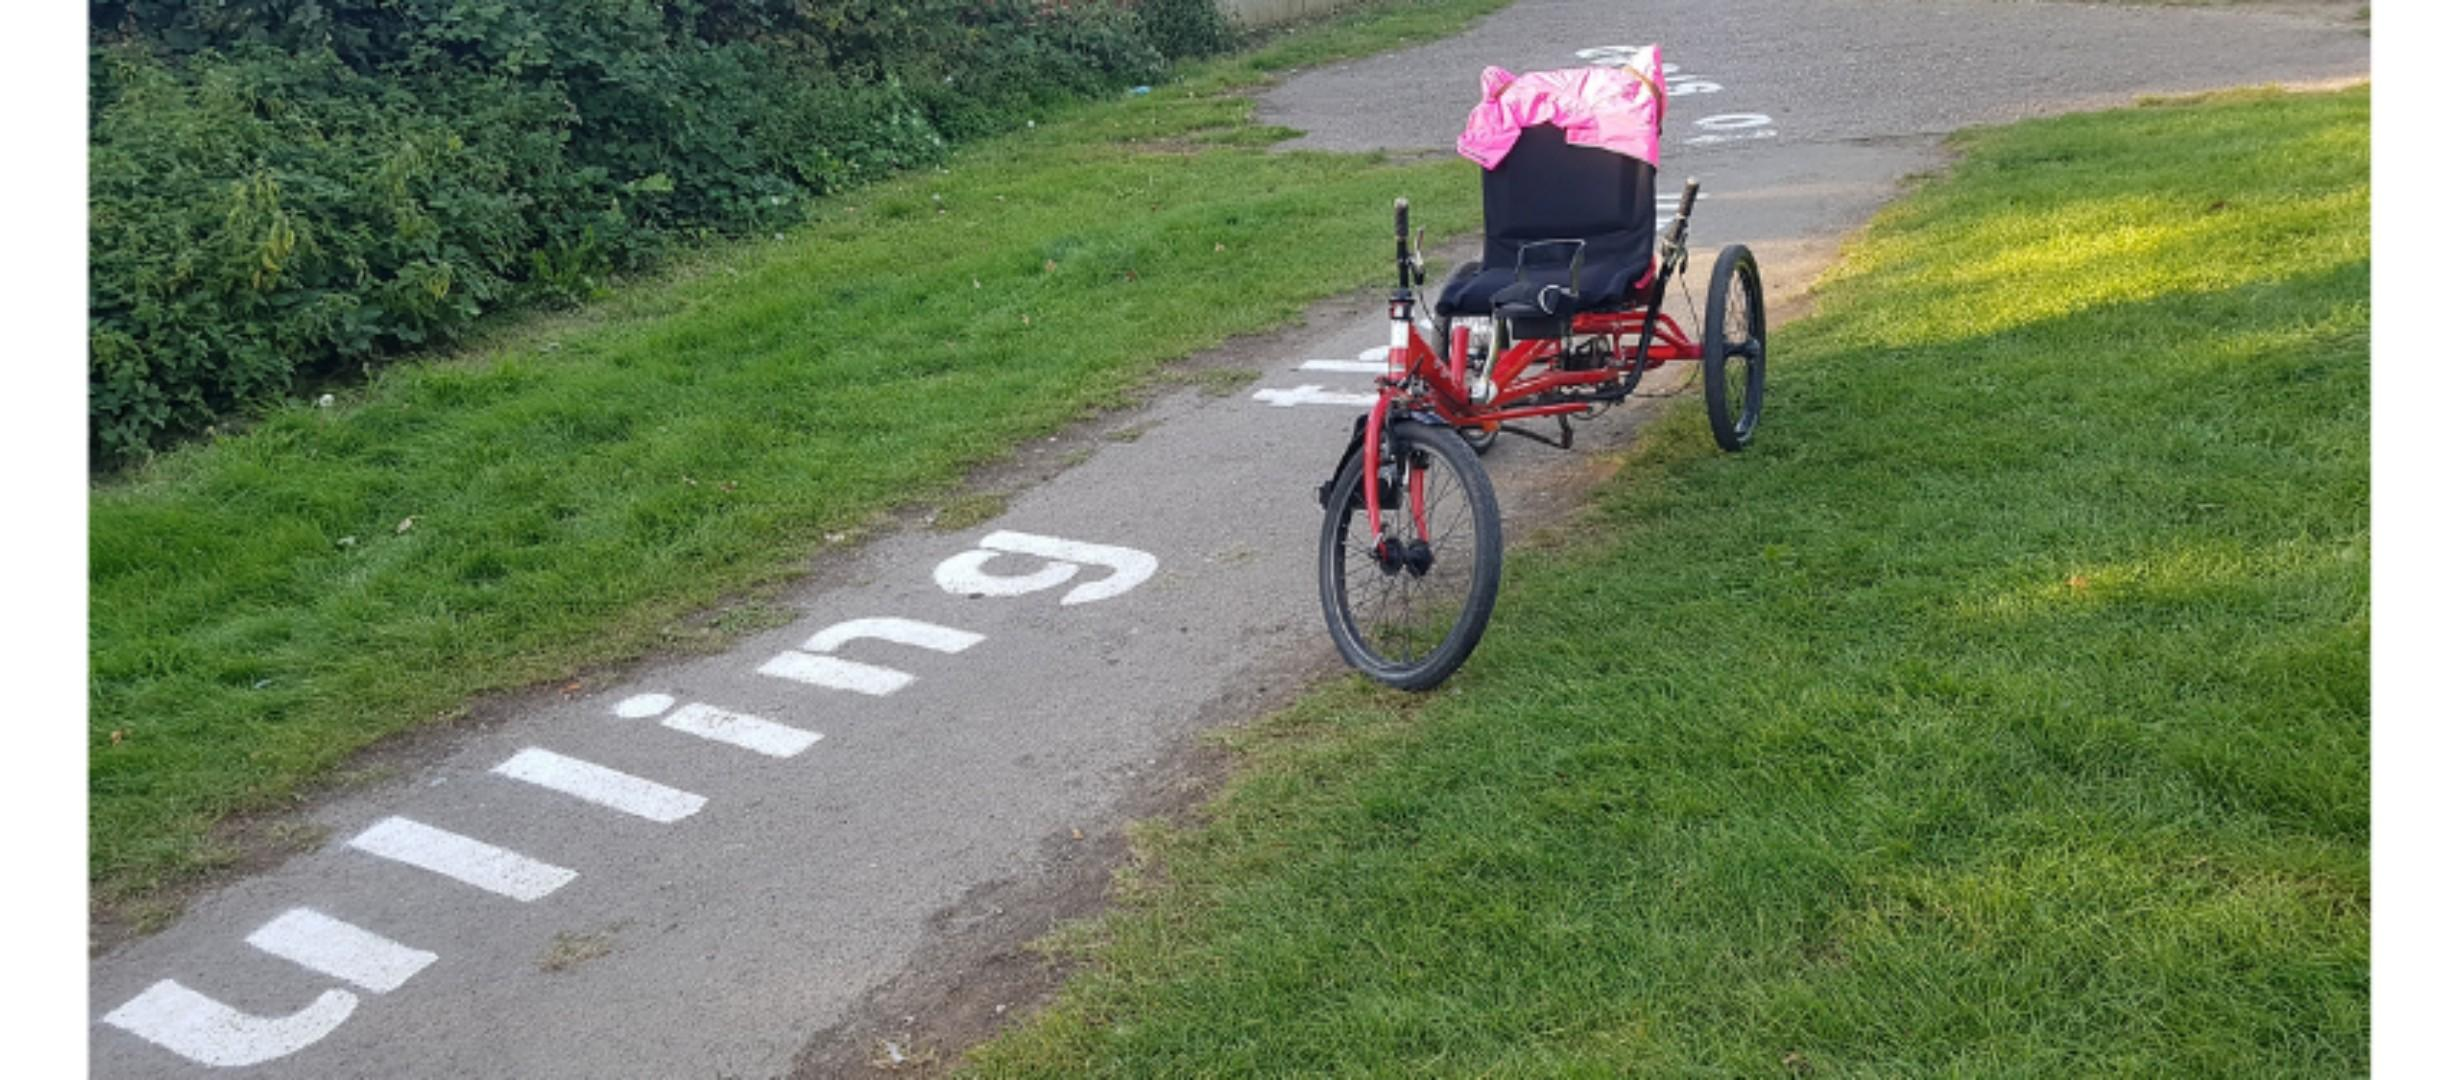 recumbent trike on pathway by grass, words on pathway, only visible word 'lulling'